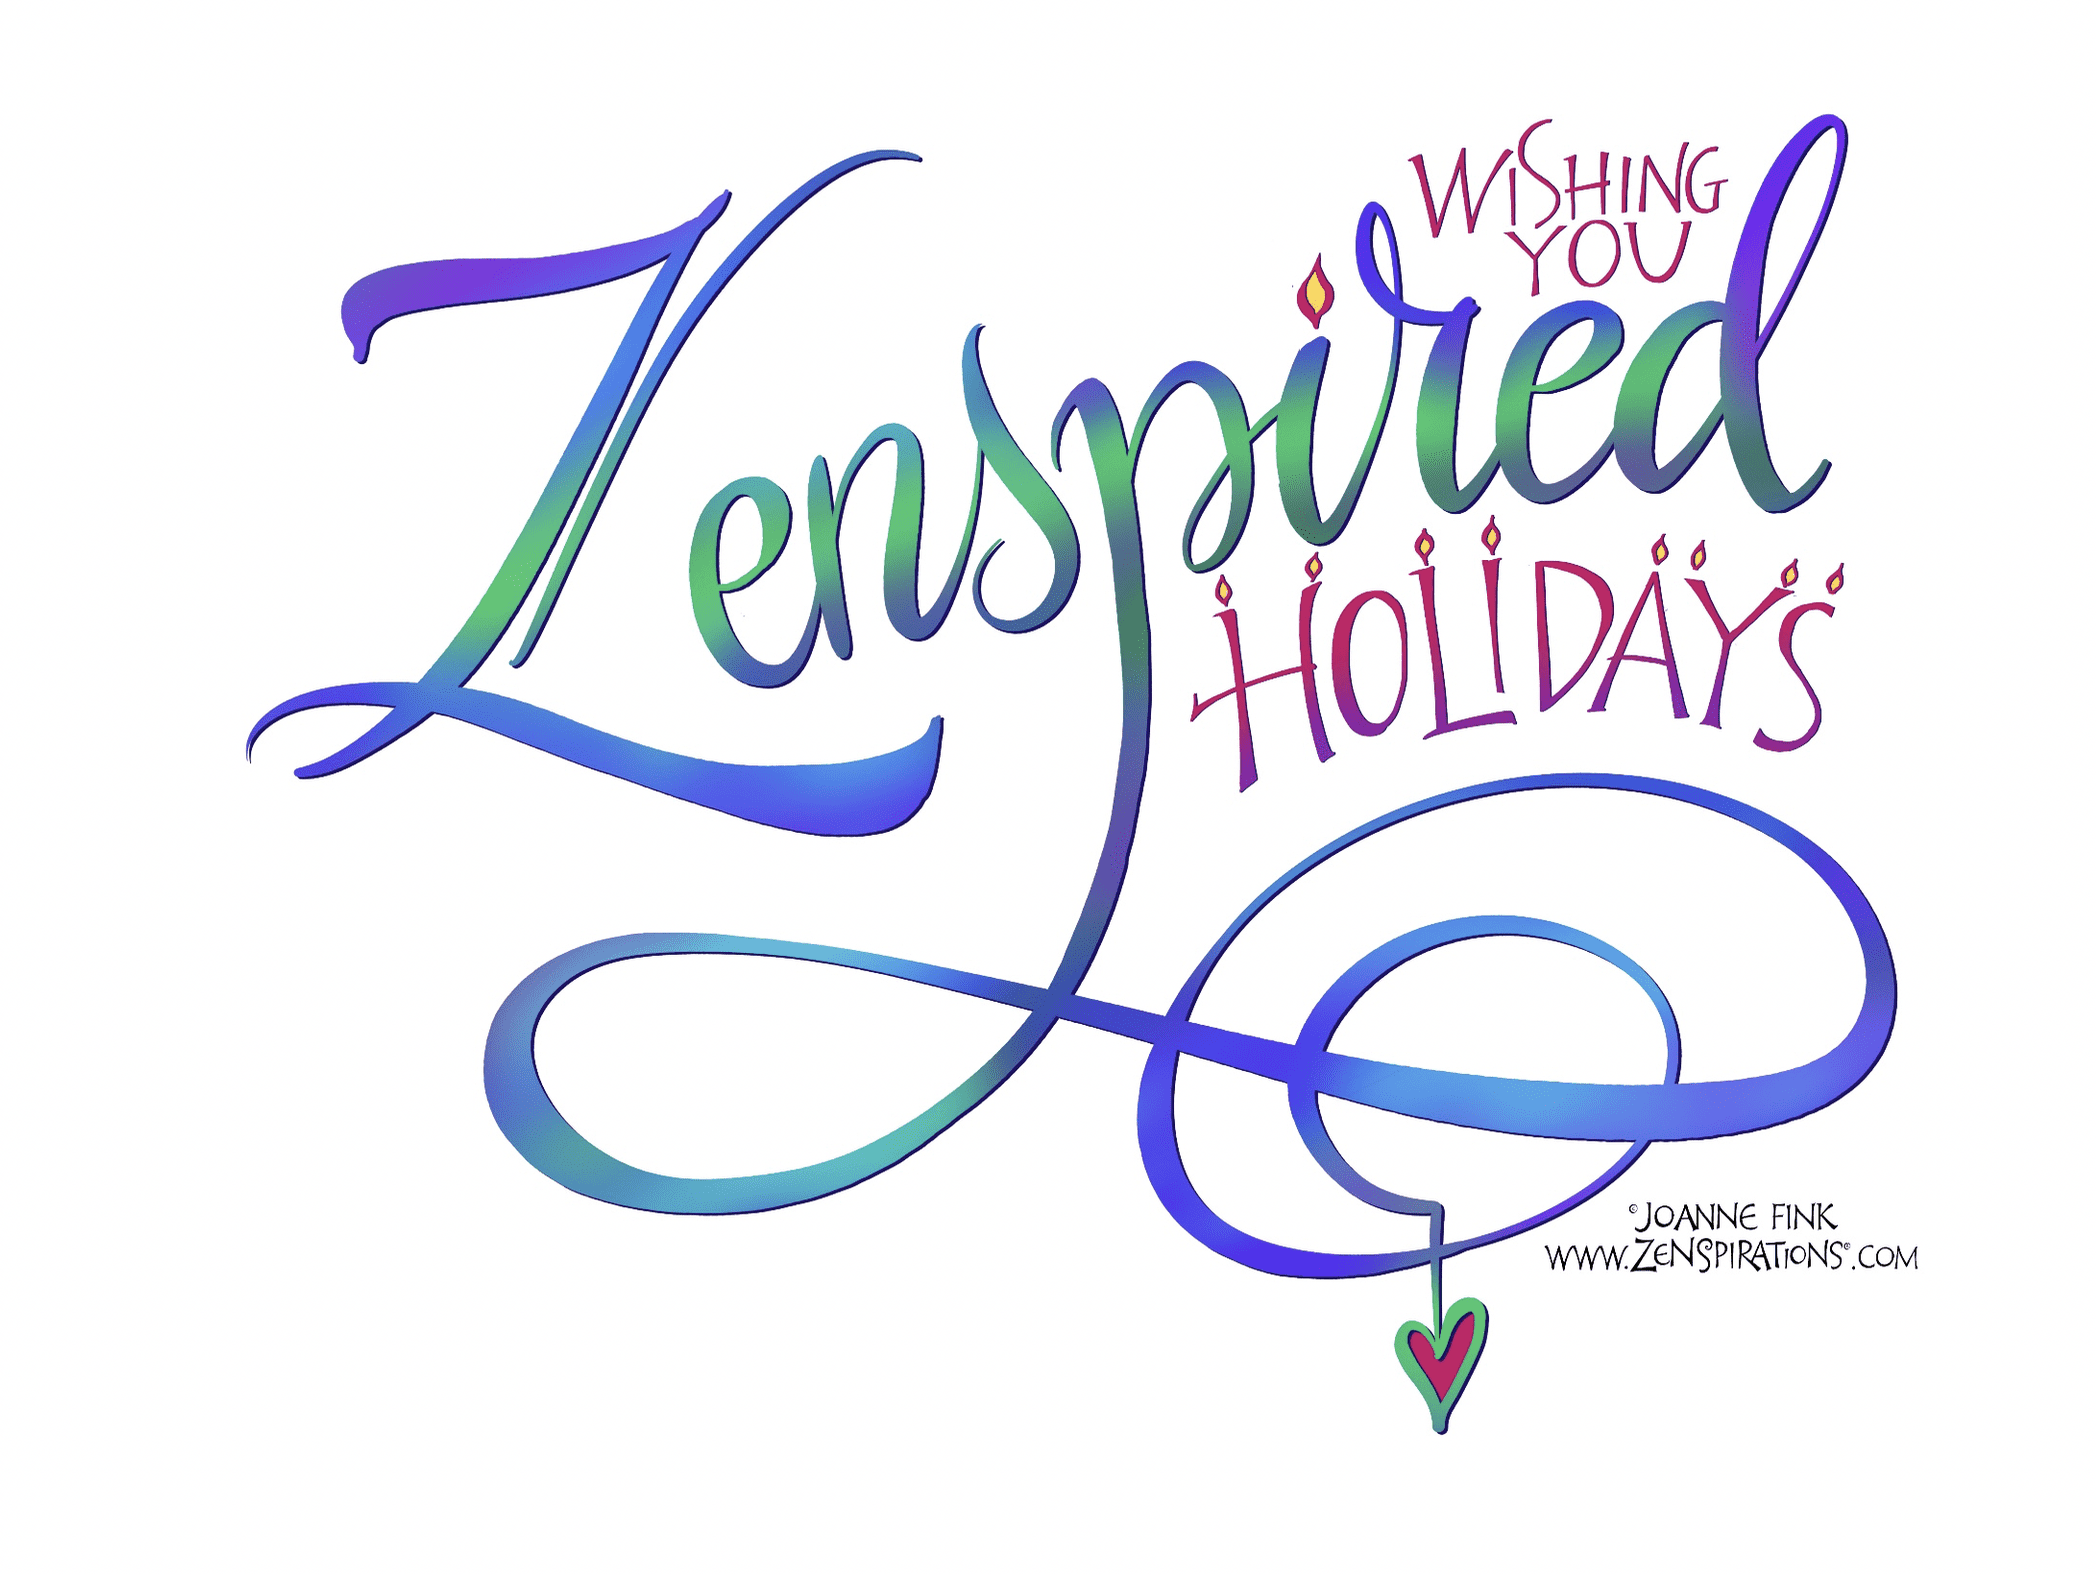 zenspirations_by_joanne_fink_blog_12_26_2016_zenspired_holidays